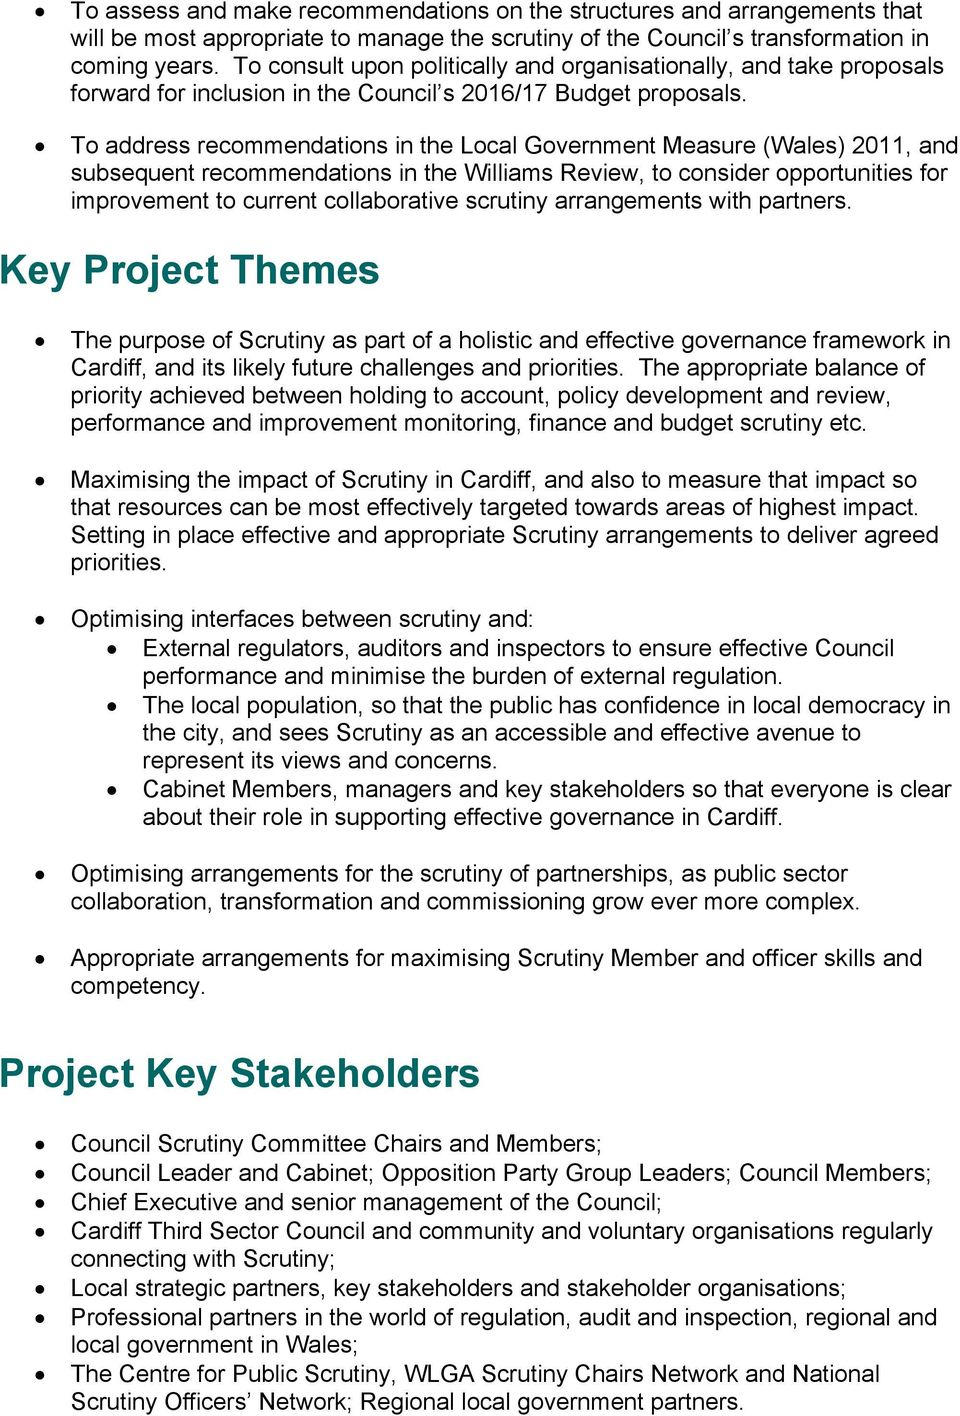 To address recommendations in the Local Government Measure (Wales) 2011, and subsequent recommendations in the Williams Review, to consider opportunities for improvement to current collaborative